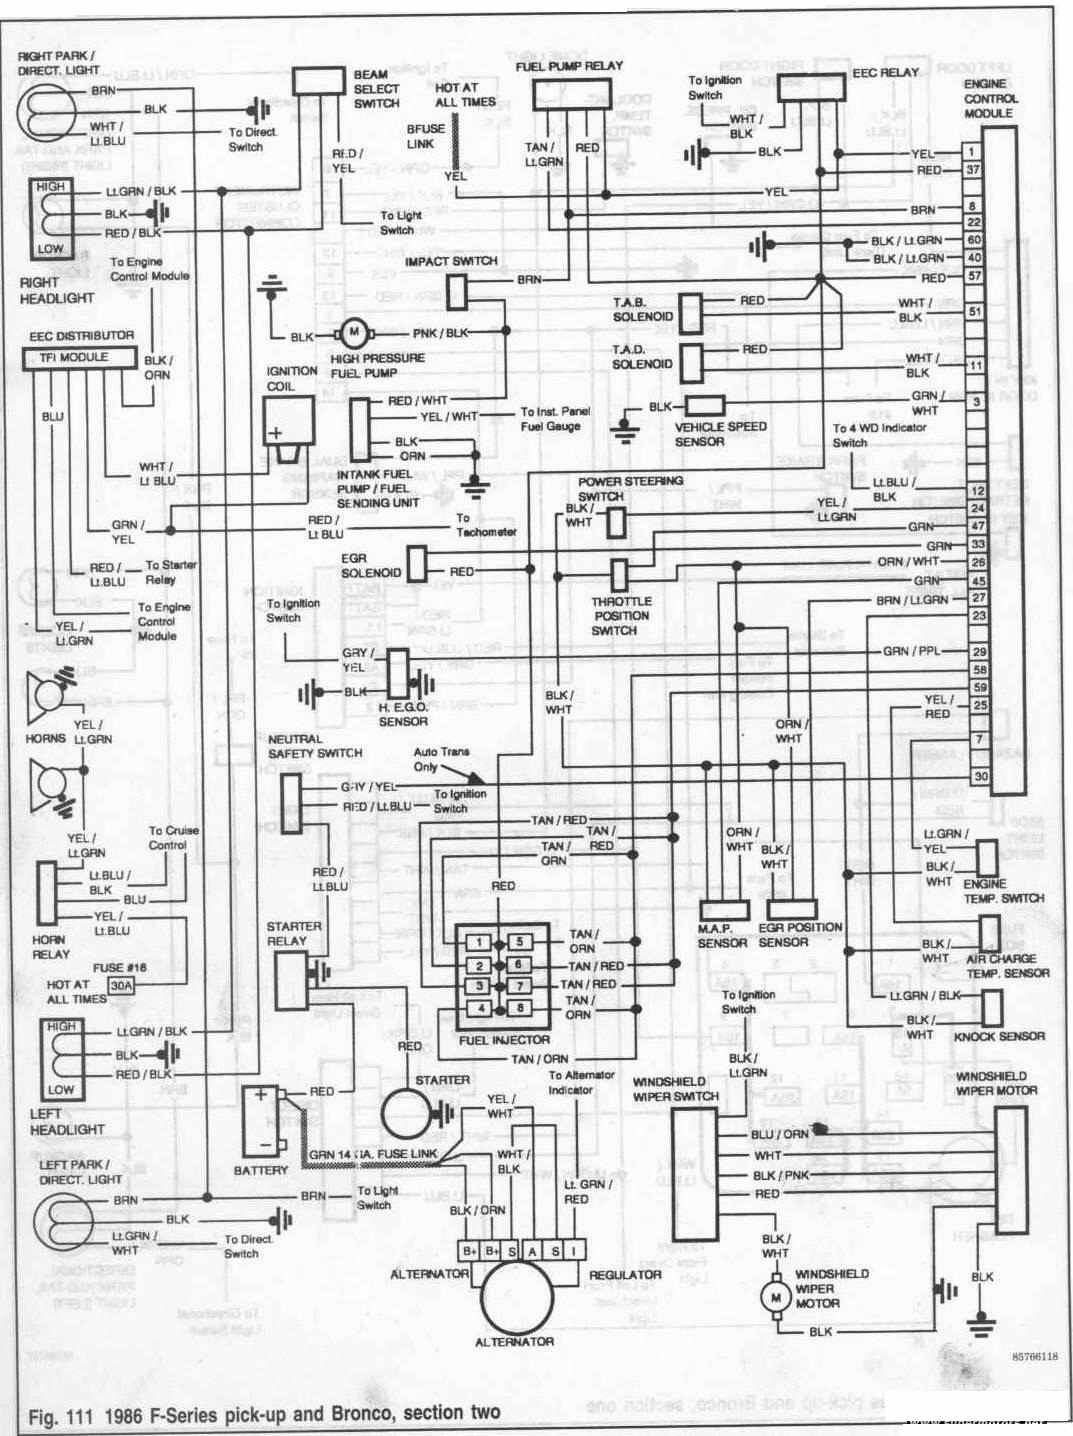 1990 Ford Bronco Wiring Diagram Baumatic Cooker Hood 1985 1986 Efi Ground Location Forum